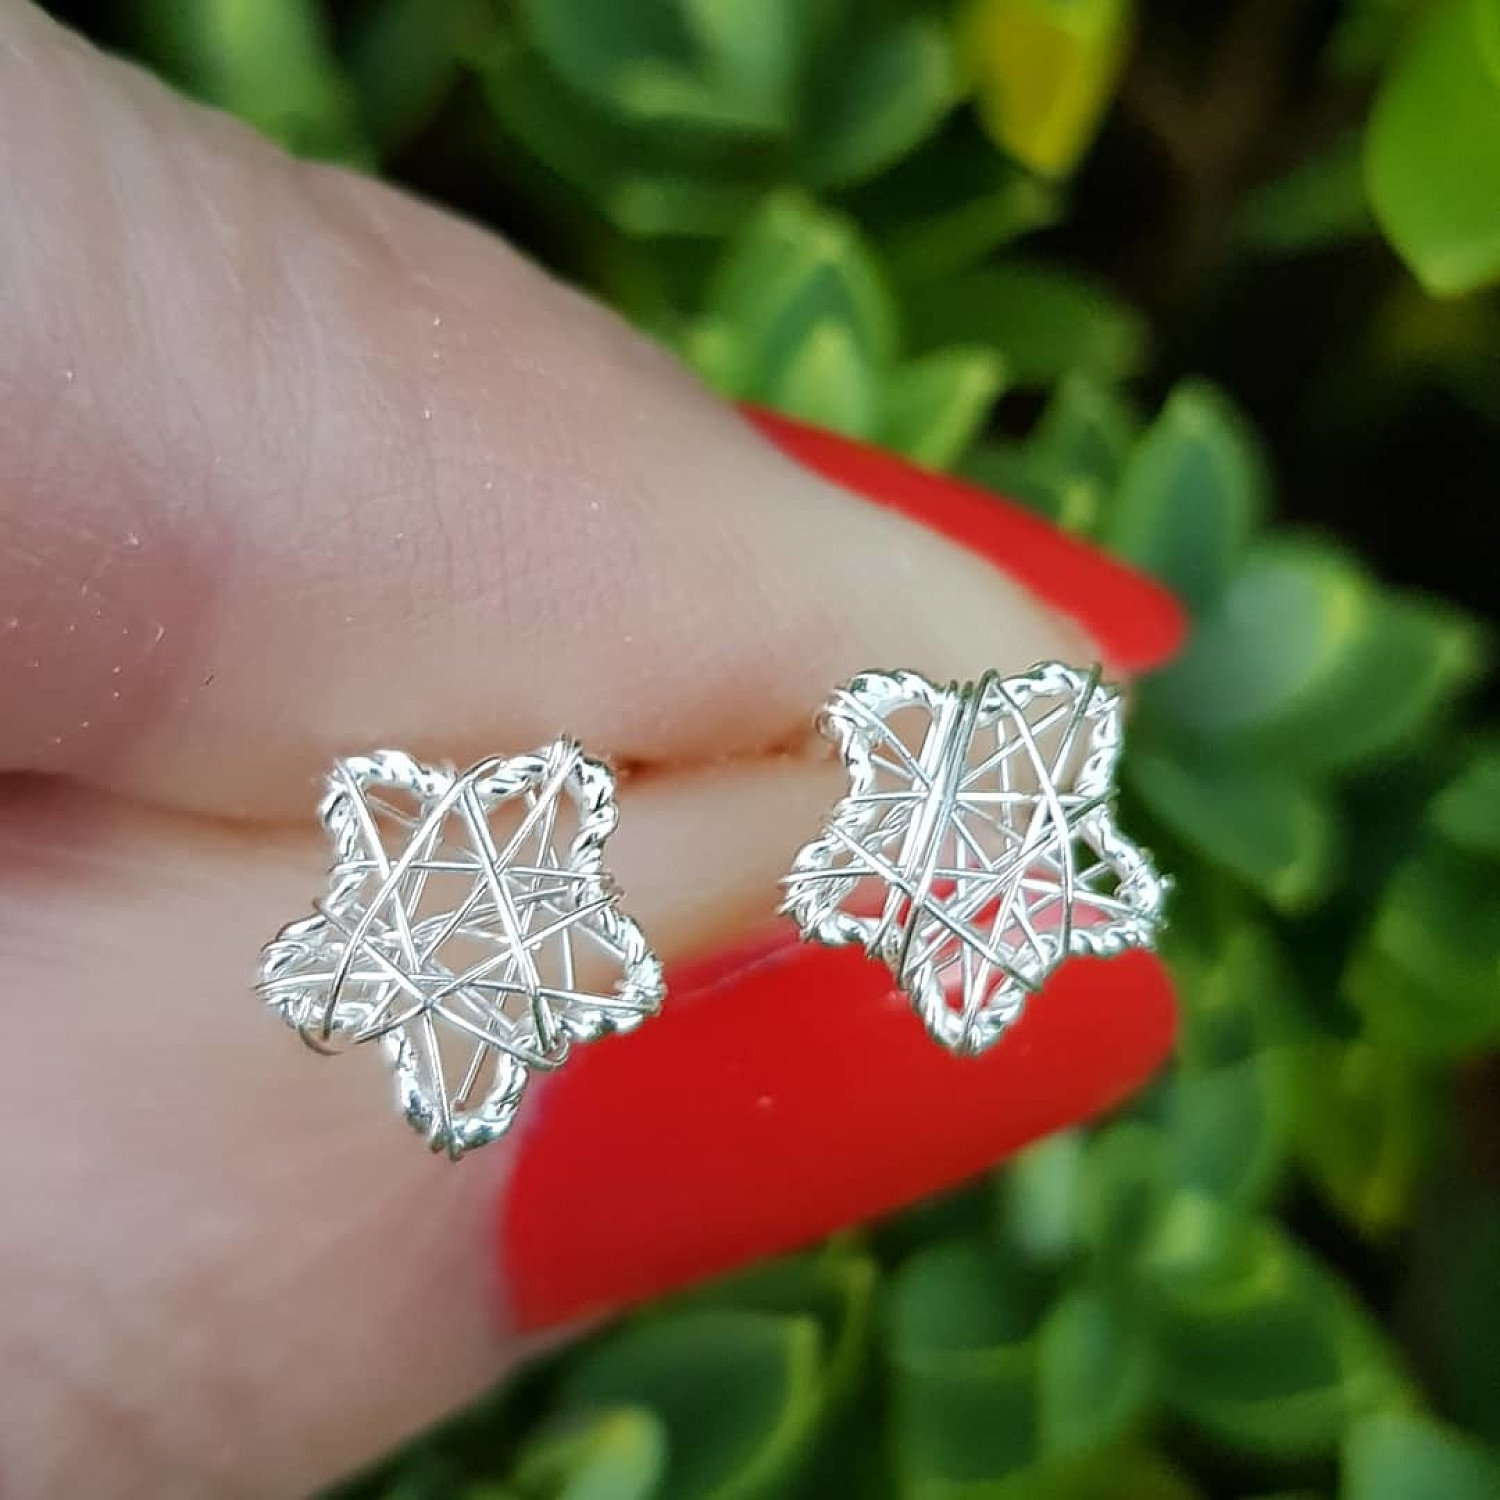 Silver, star weave stud earrings. 8mmx8mm. 0.55g - ONLY £9.50 from Callibeau Jewellery